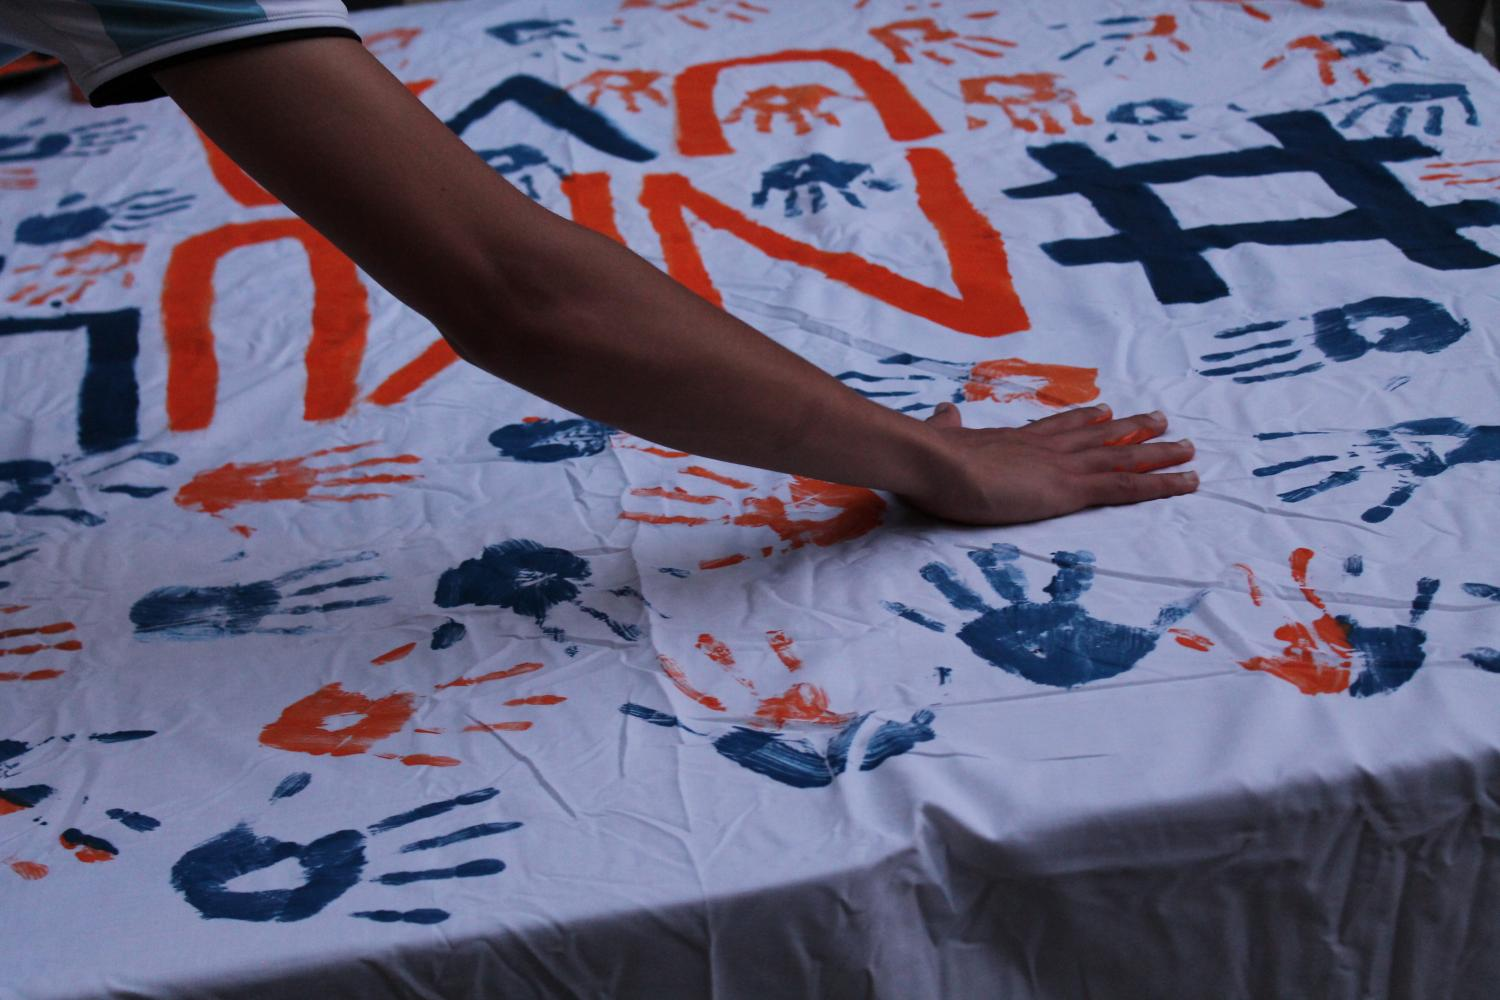 The banner will be sent to UVA in the coming weeks. After the vigil it was speckled with both hand prints and signatures.